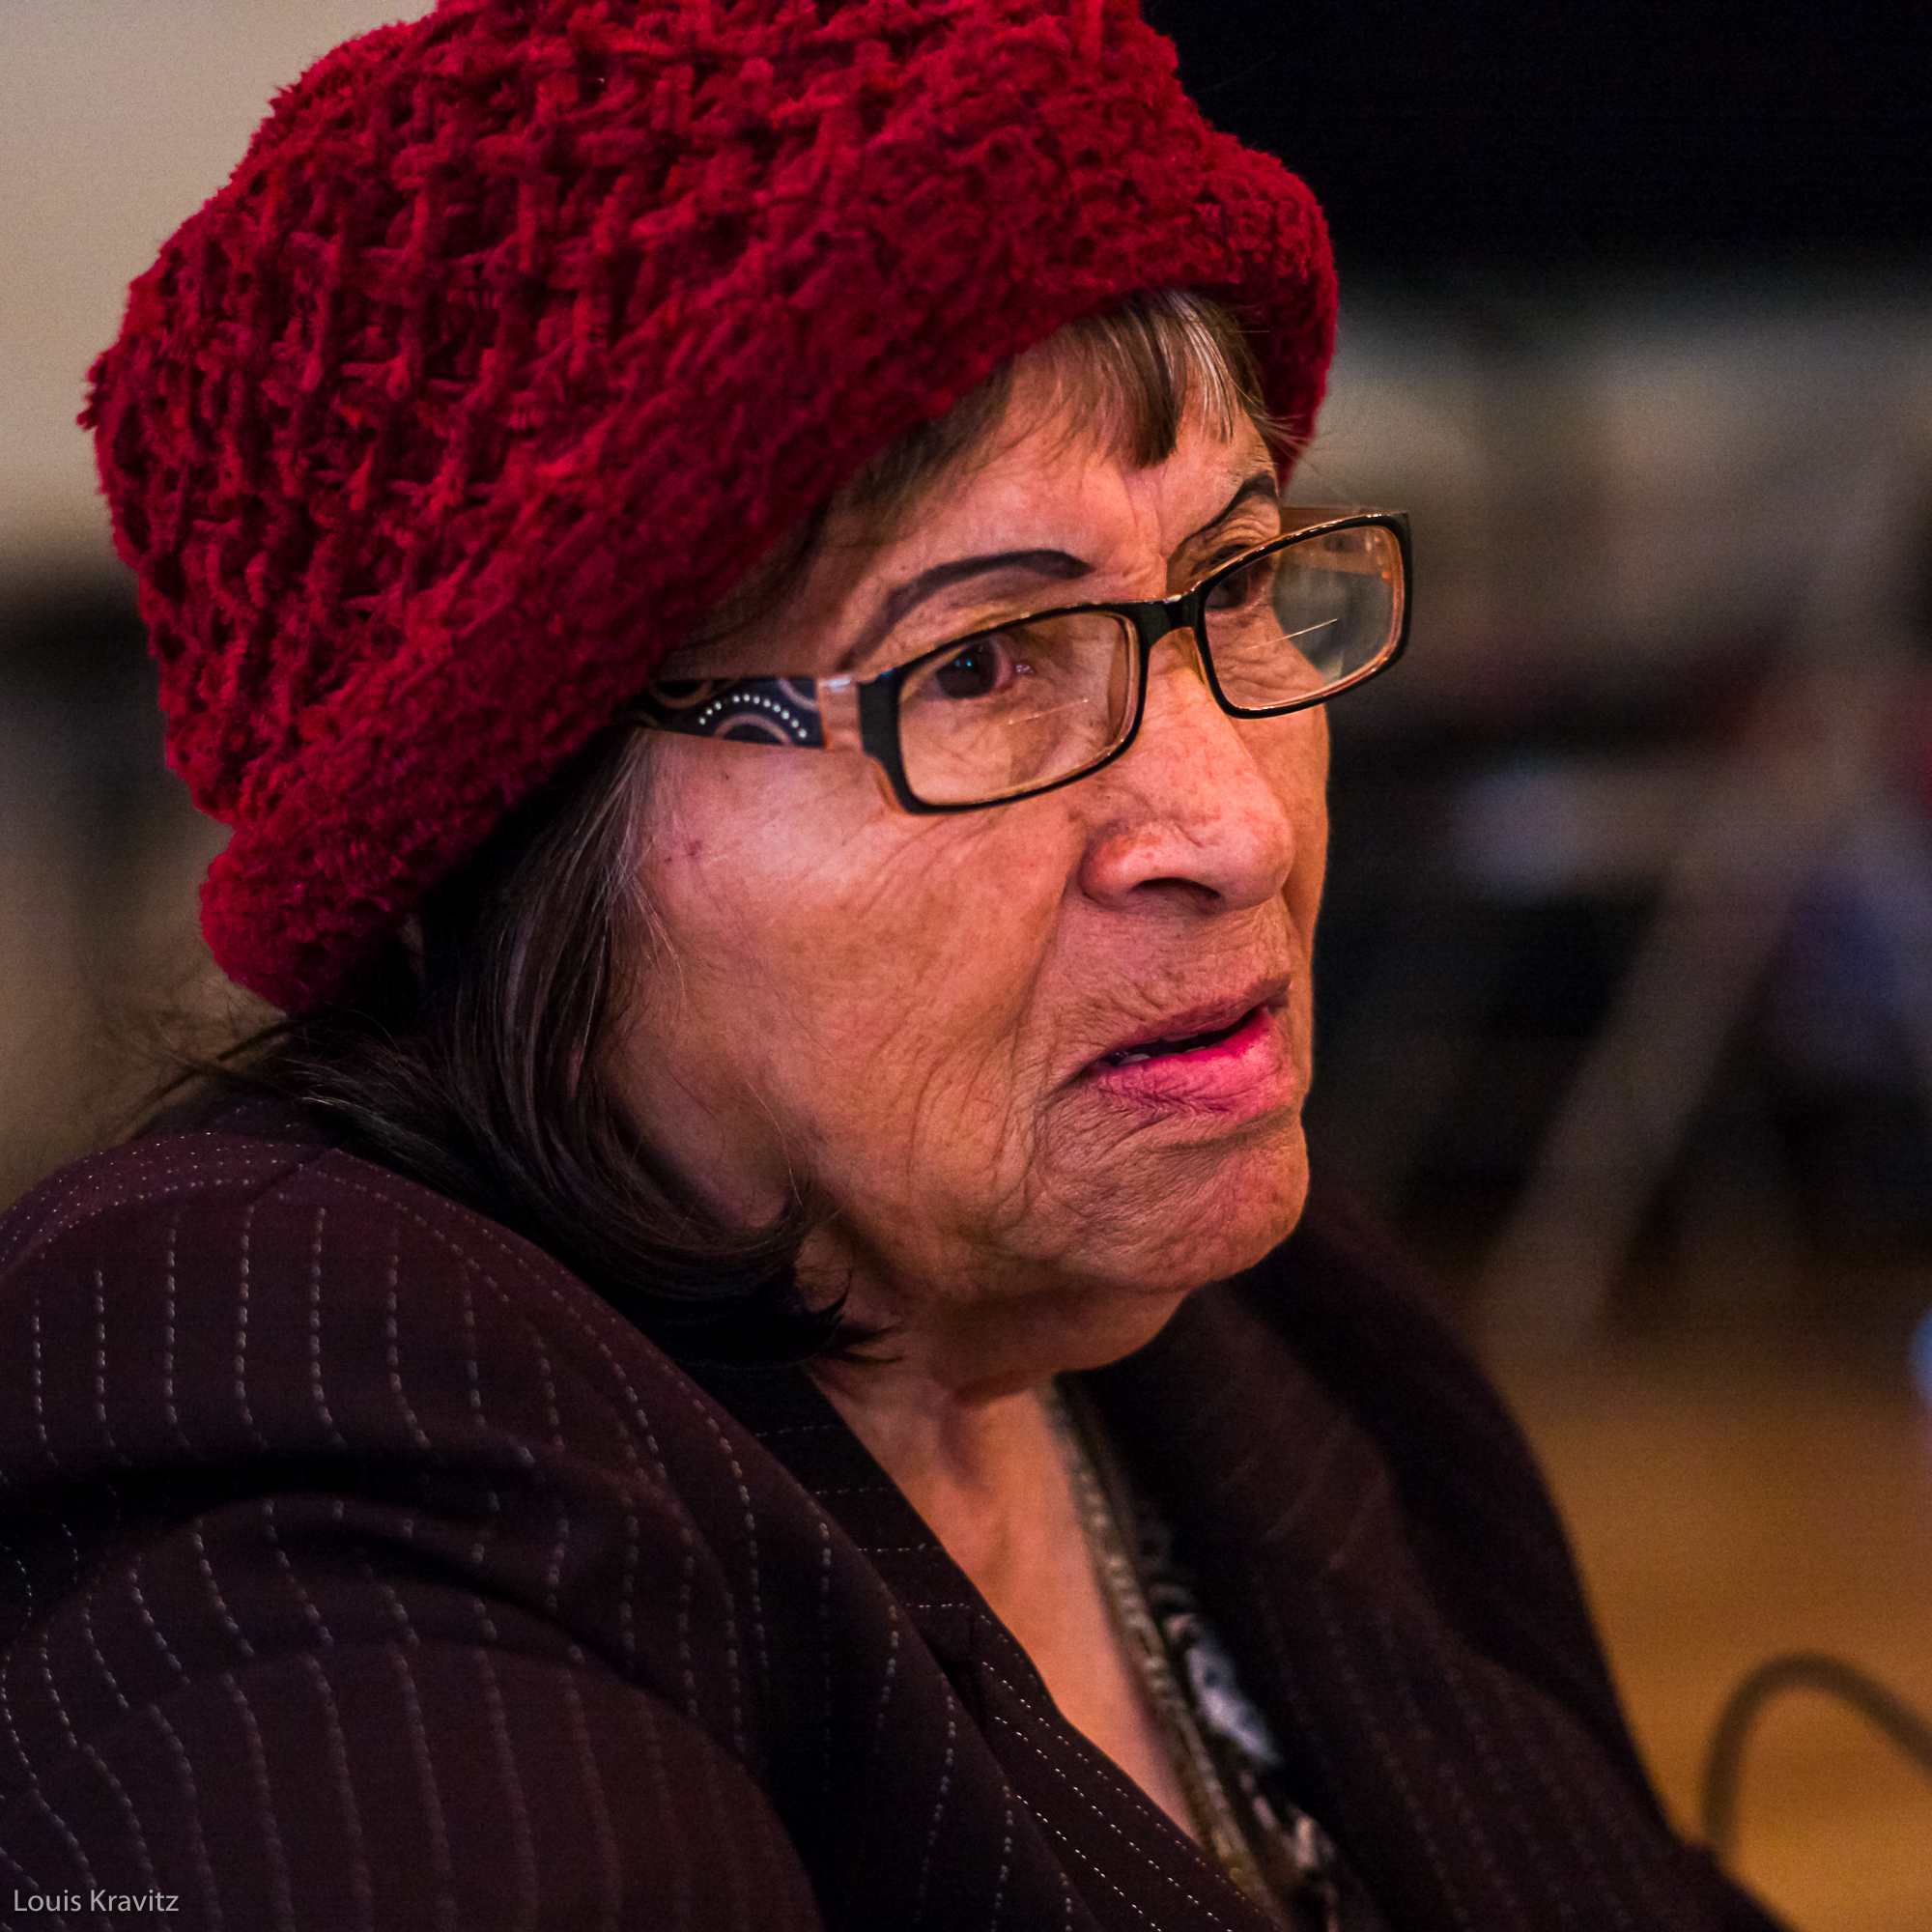 senior woman with crocheted hat and glasses